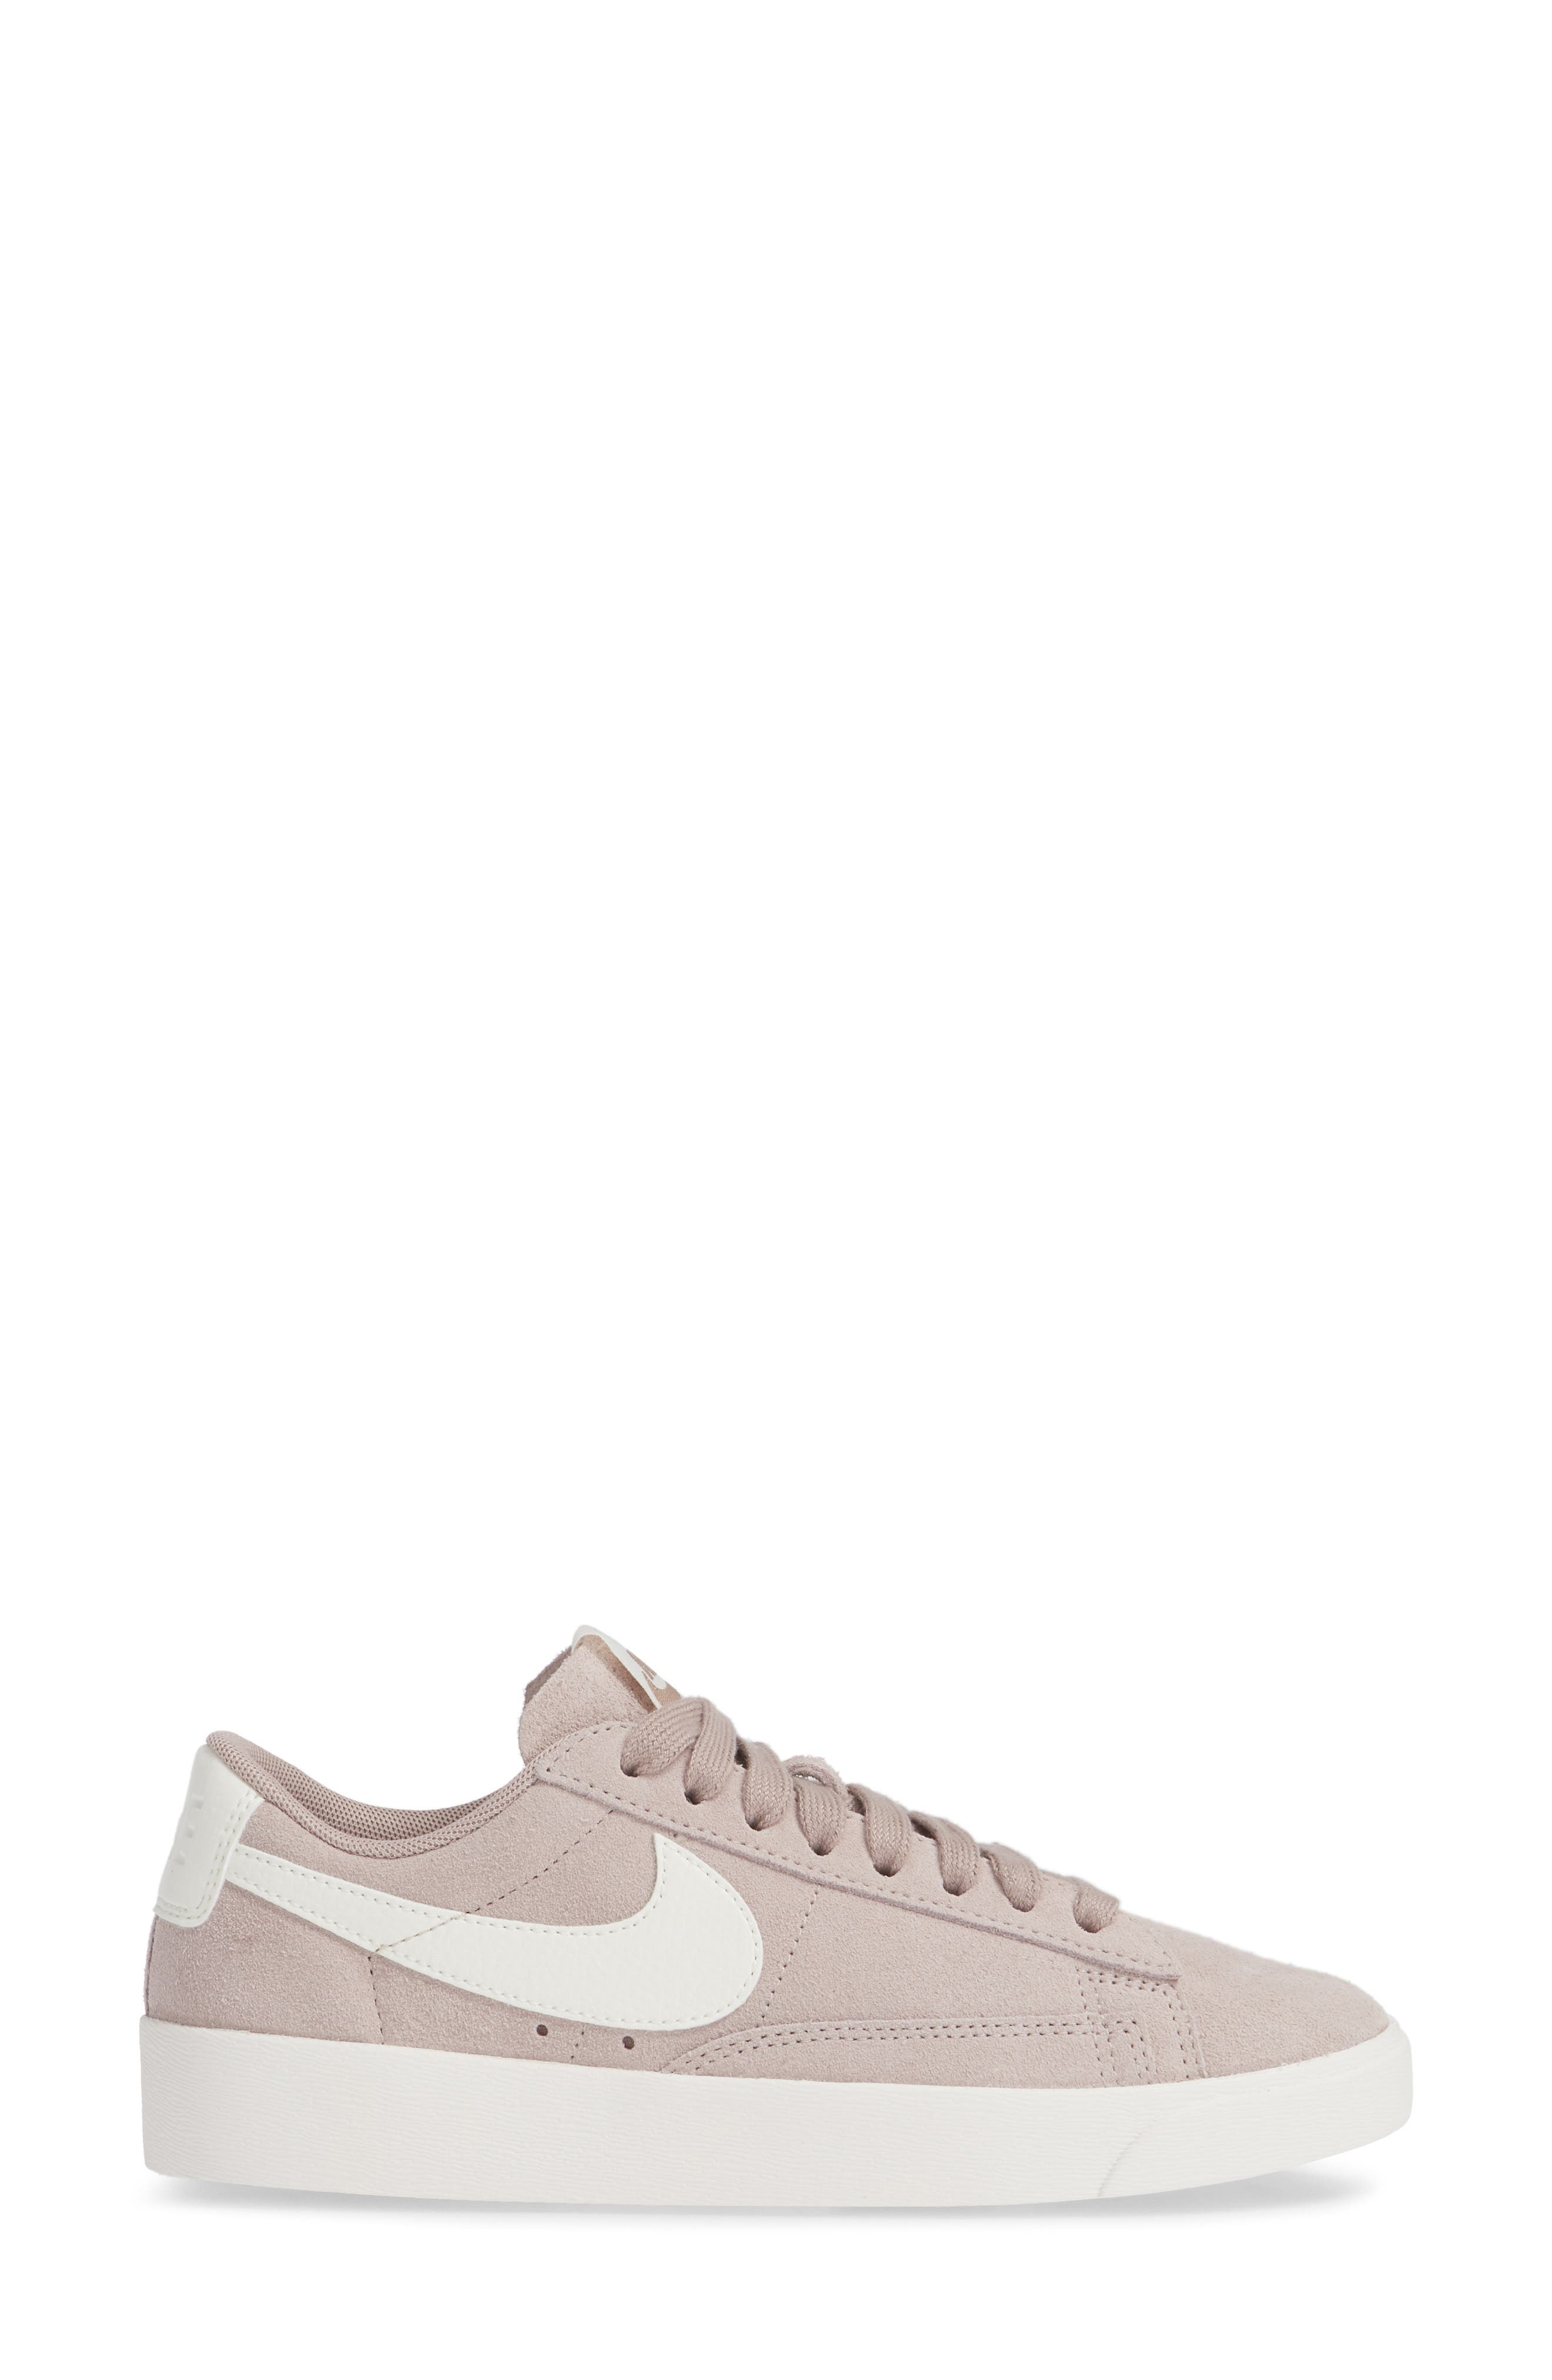 Blazer Low Sneaker,                             Alternate thumbnail 3, color,                             DIFFUSED TAUPE/ SAIL